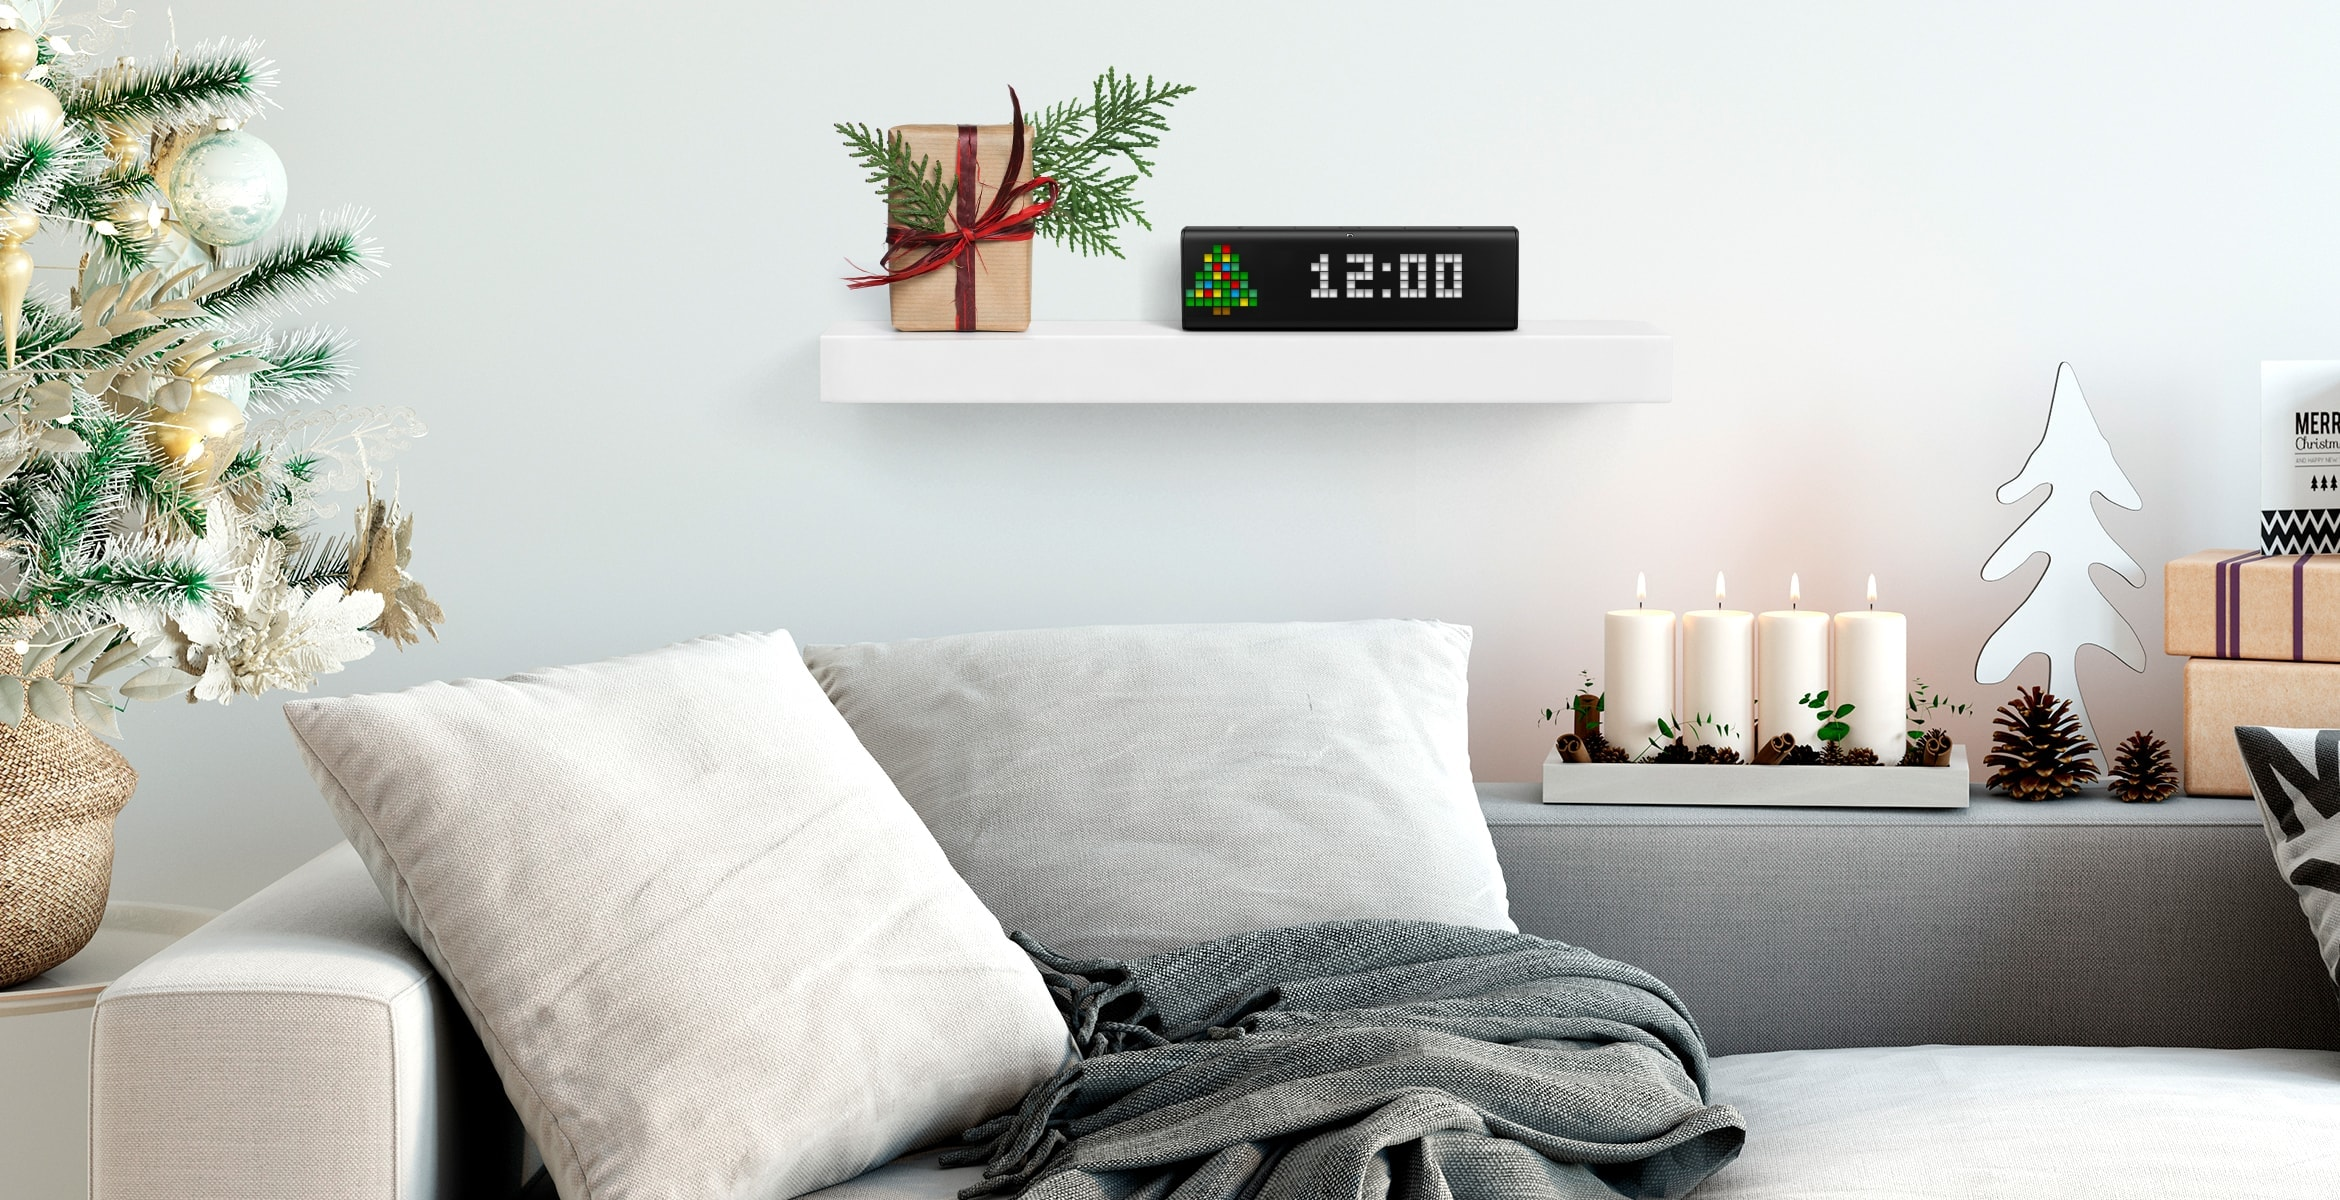 A digital clock stands on a shelf in the room with Christmas decorations, displays time and Christmas tree as a clock face